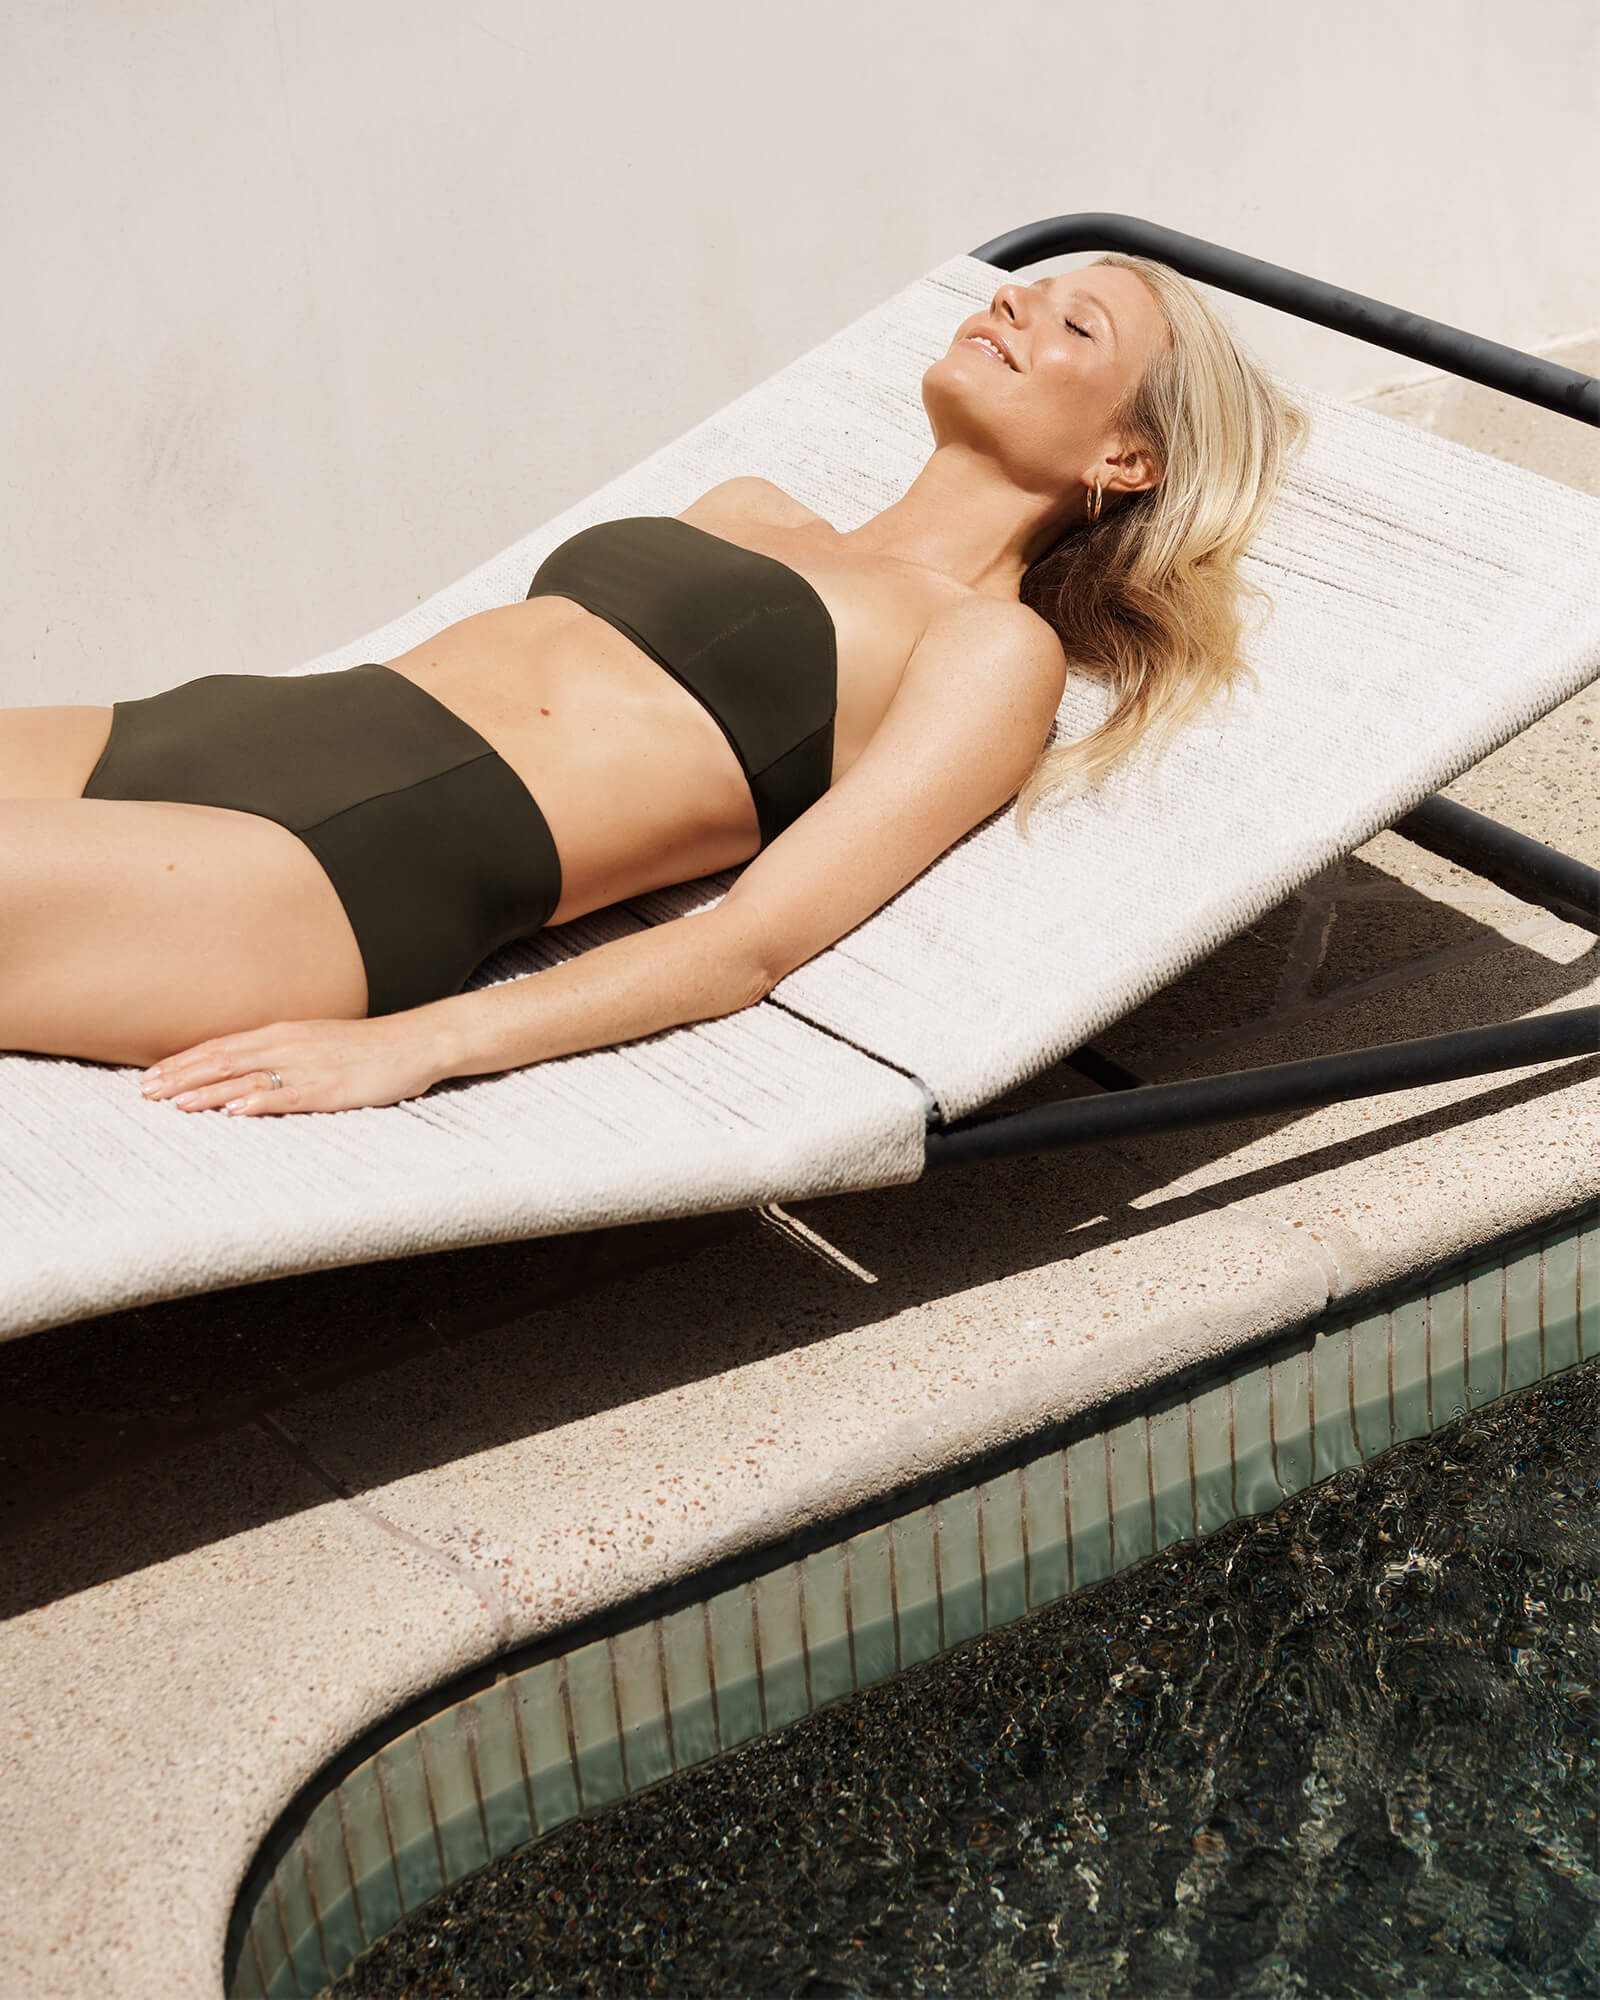 Gwyneth Paltrow with the Convertible Bandeau